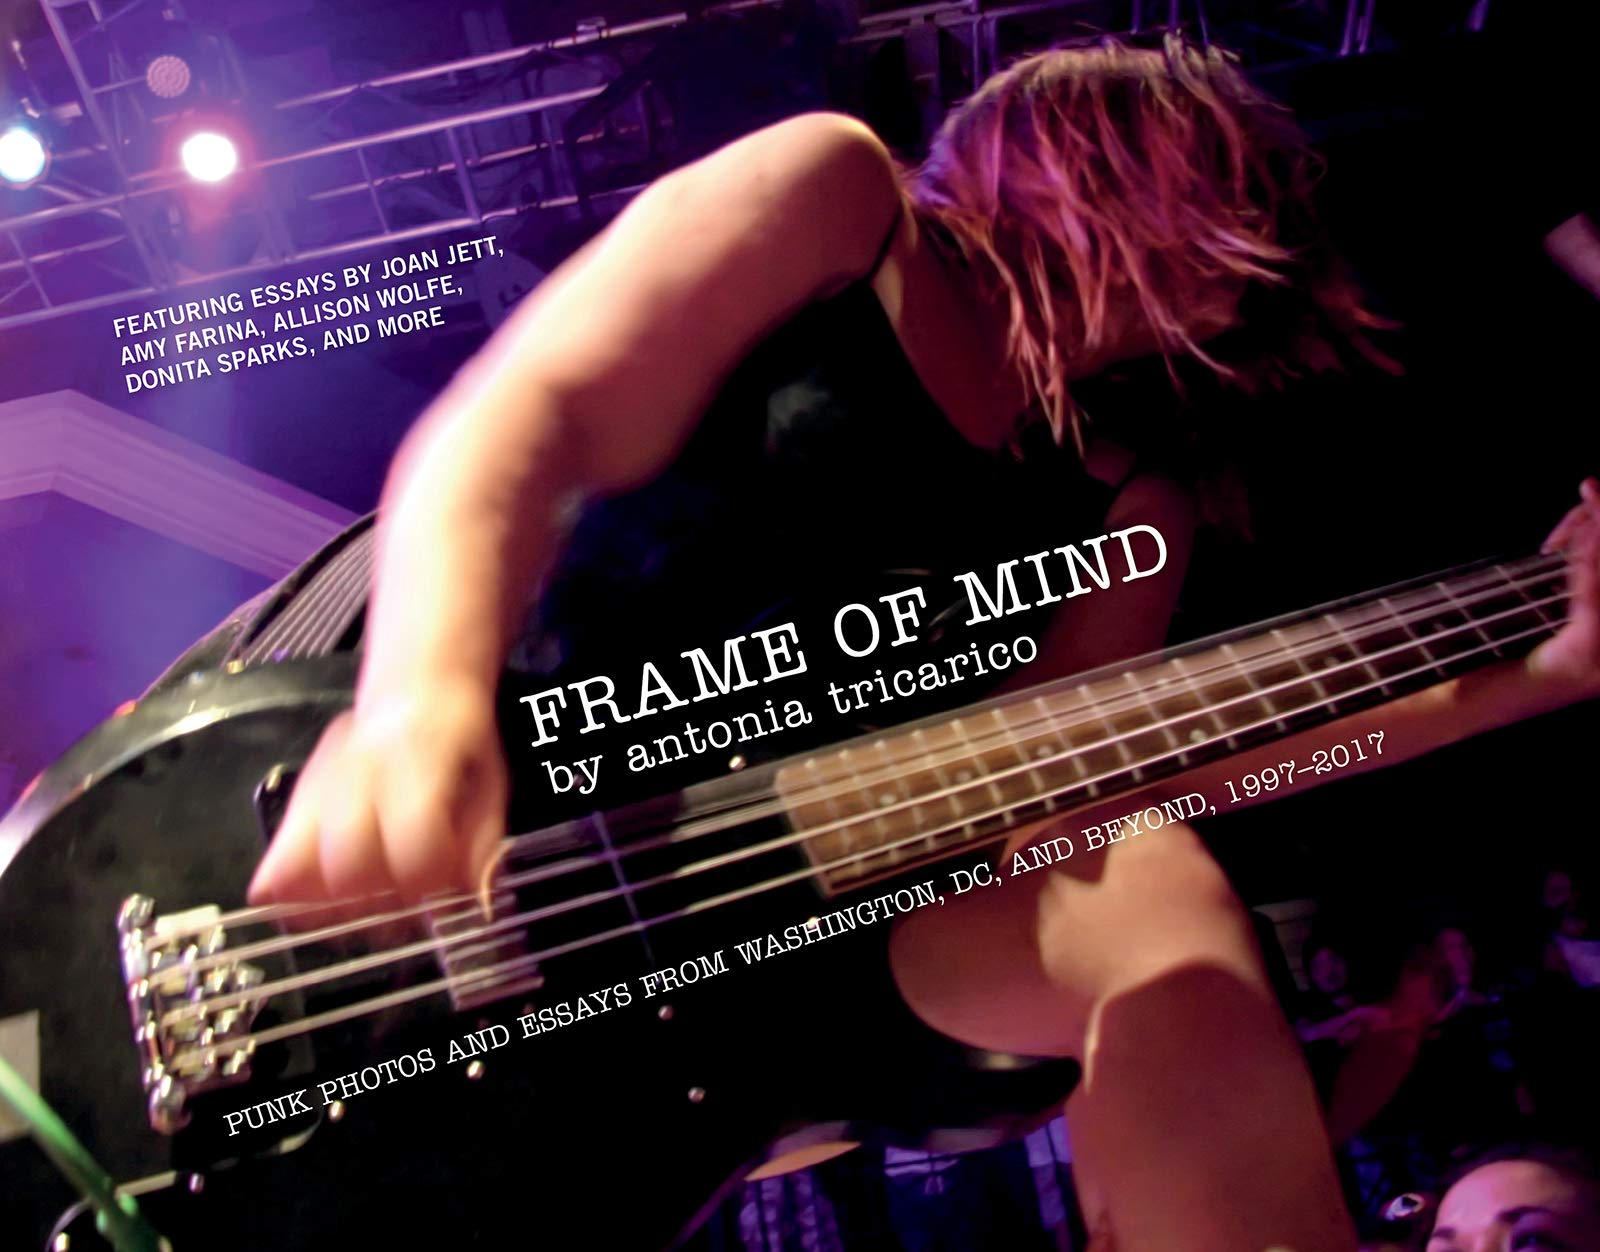 Amazon.com: Frame of Mind: Punk Photos and Essays from ...